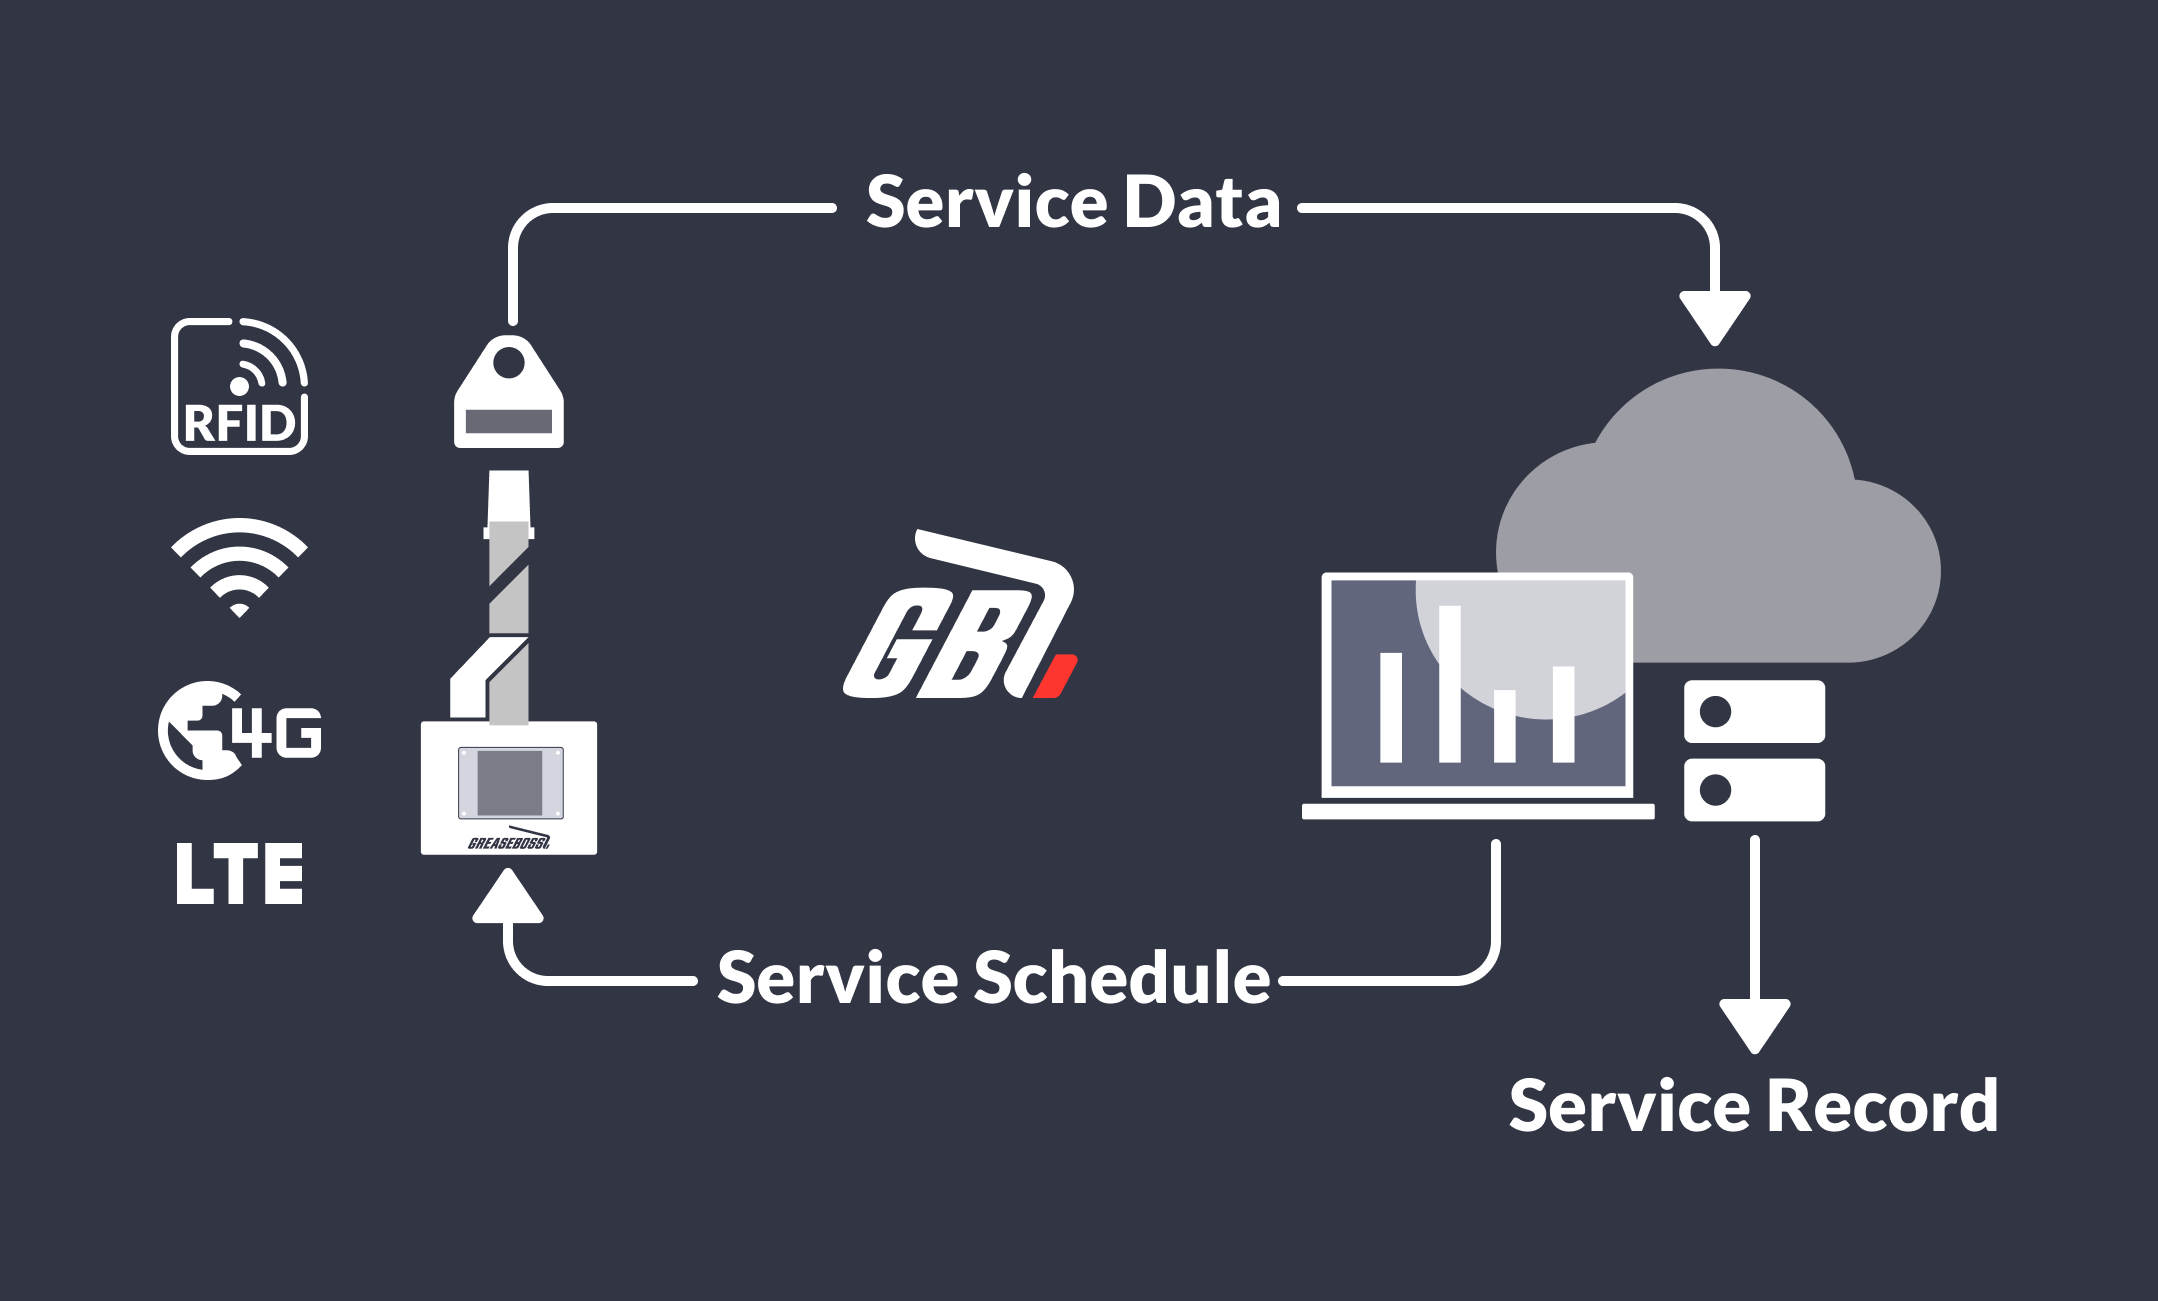 The GreaseBoss system provides an end to end solution for scheduling, tracking data and managing records of grease events